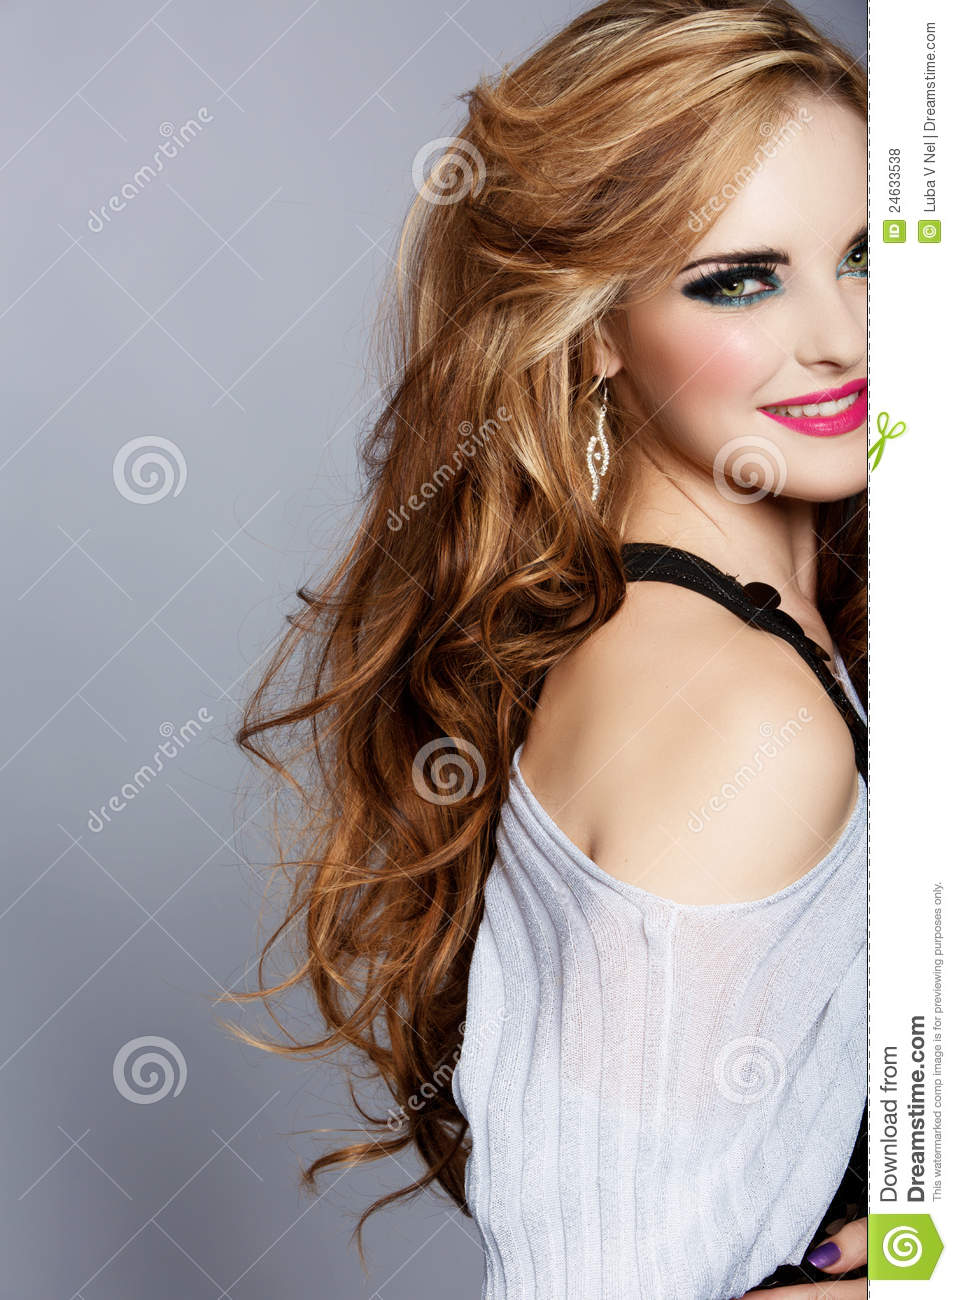 Smiling woman with long curly hair and pink lipstick